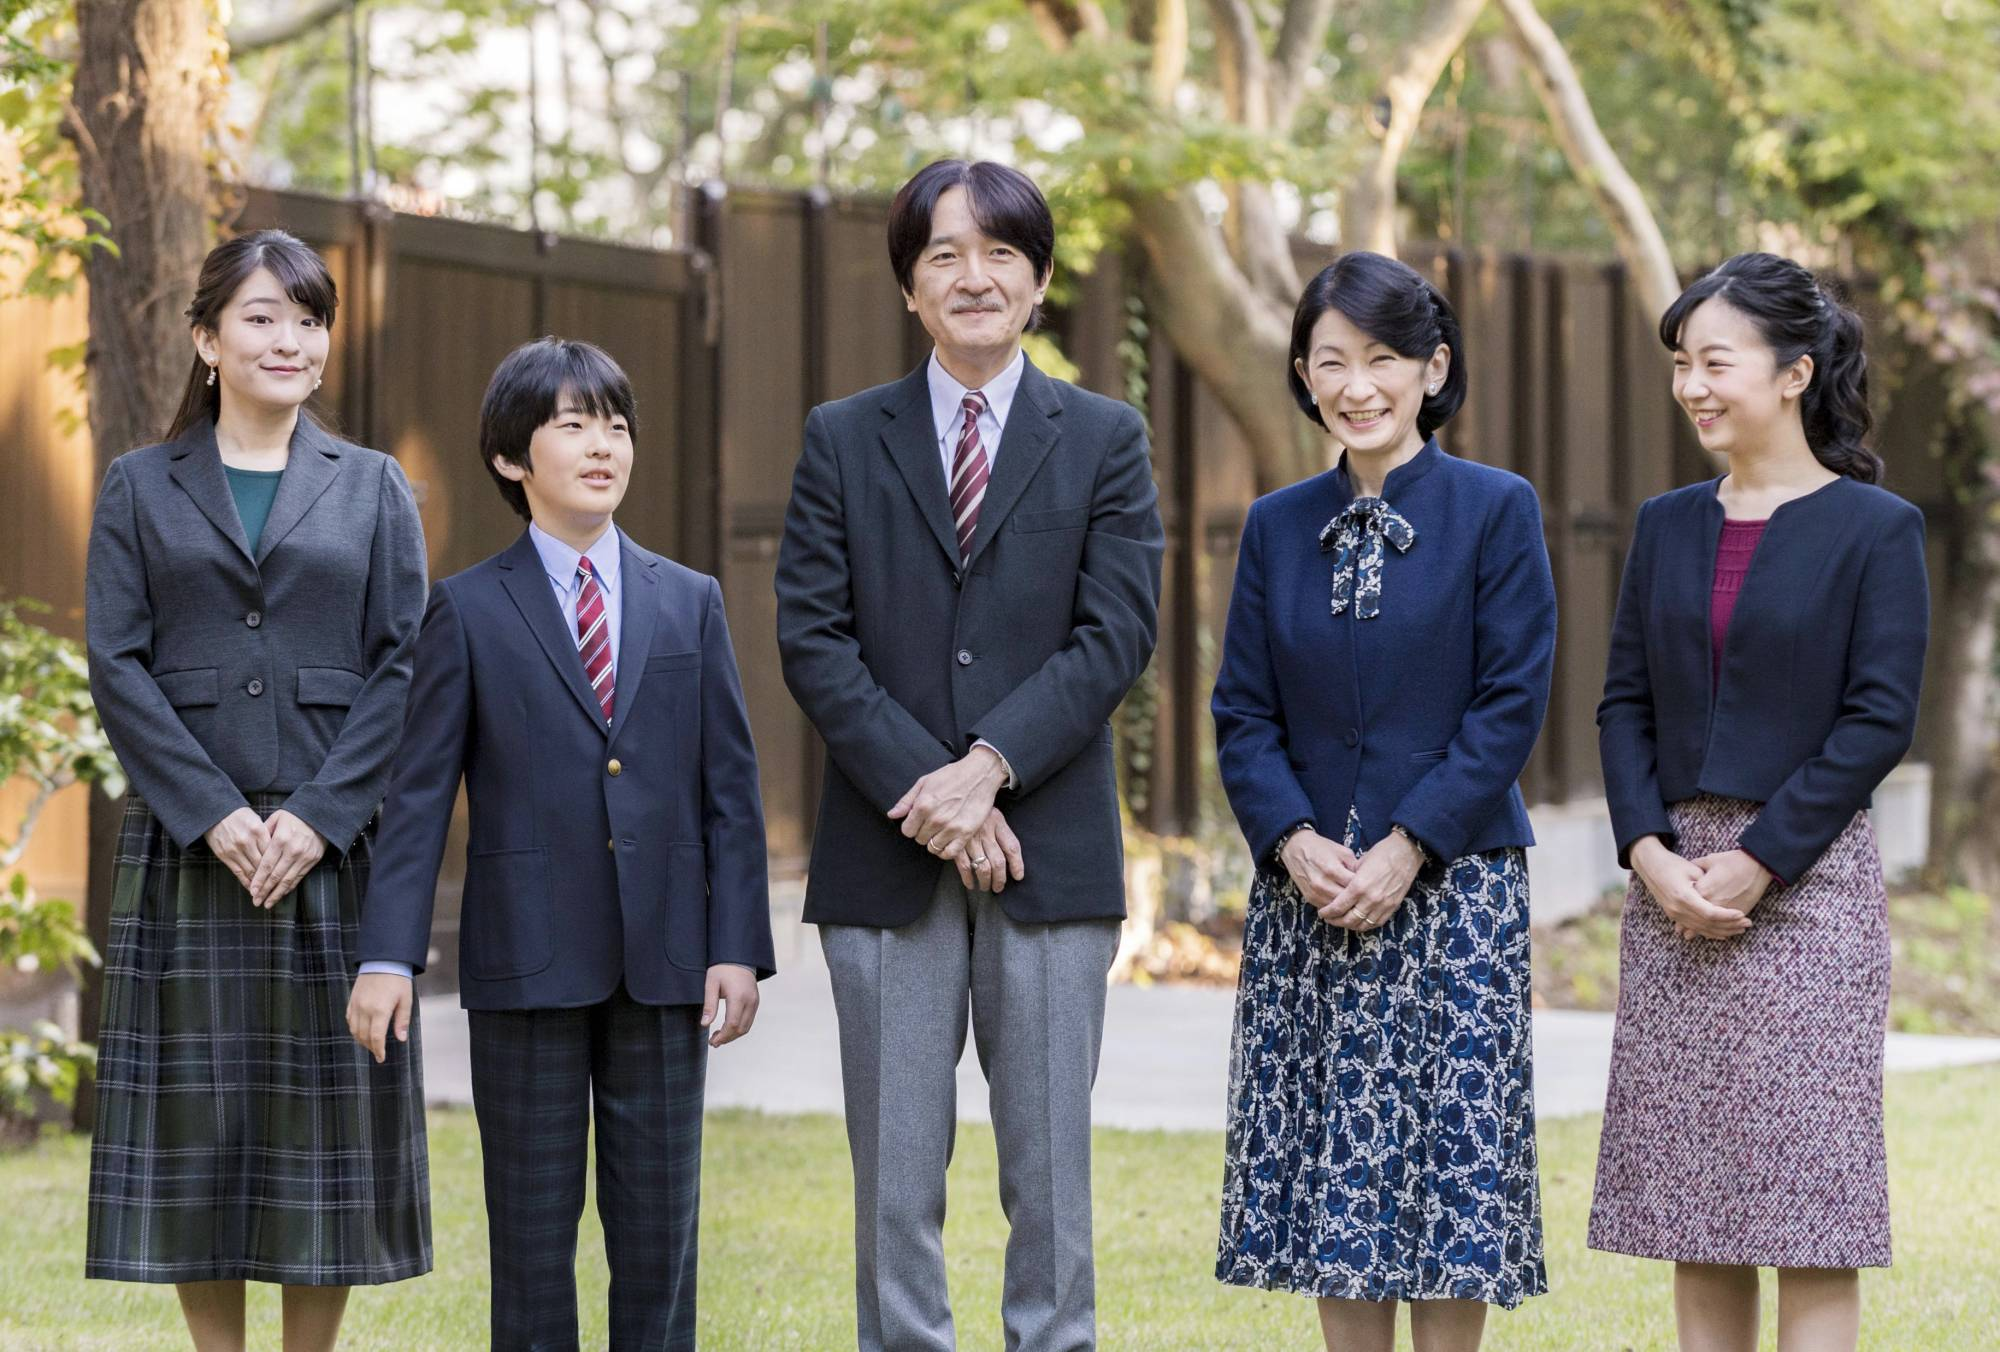 Crown Prince Akishino (center) is seen with his family in a photo taken in November last year at their residence in Tokyo's Akasaka district. | IMPERIAL HOUSEHOLD AGENCY / VIA KYODO